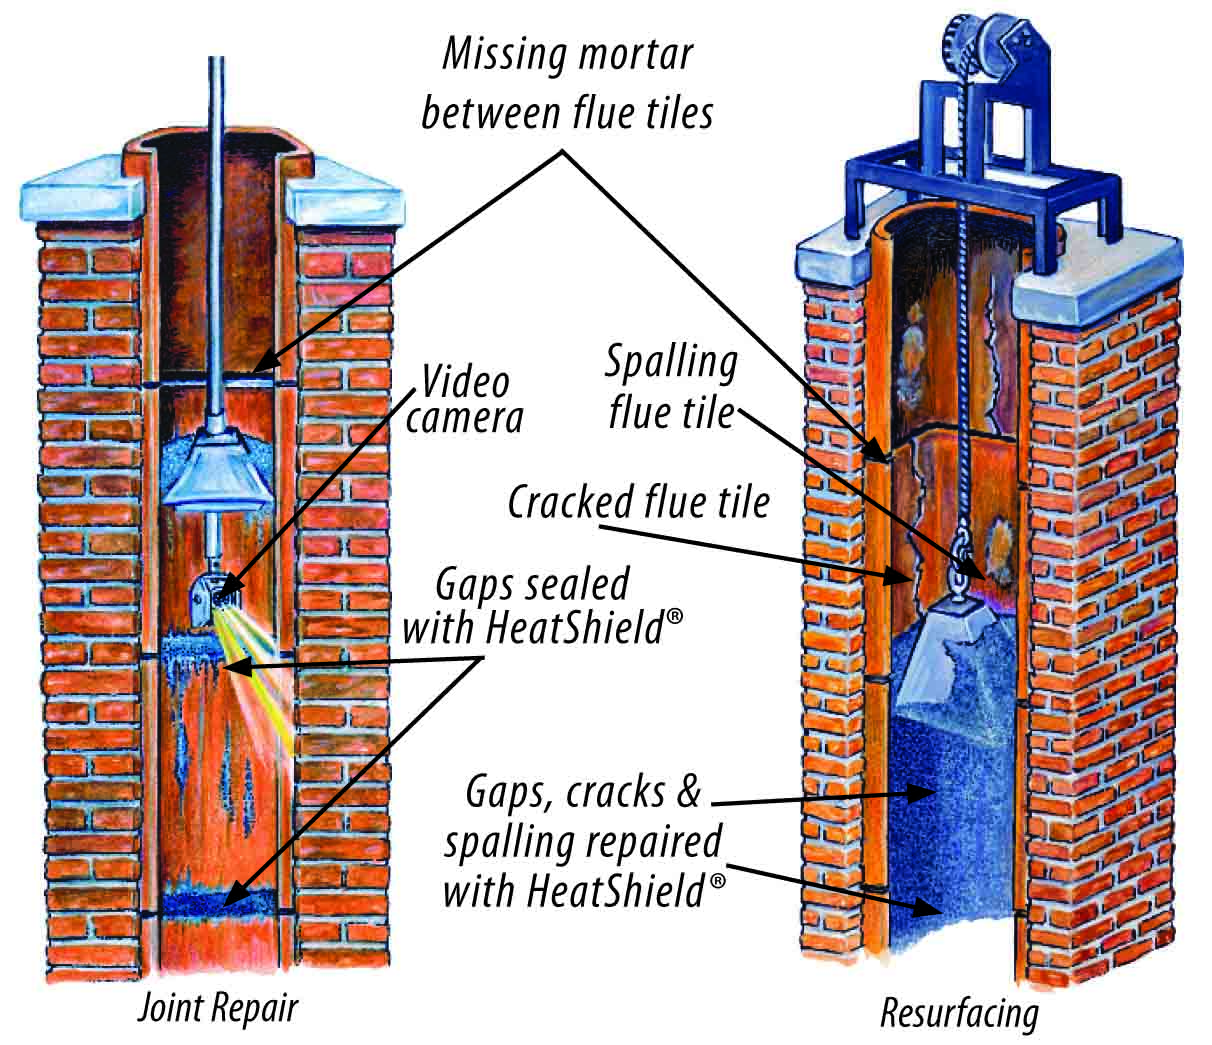 repairs kracken victoria certified bc cleaning fireplace wett guru services flue chimney